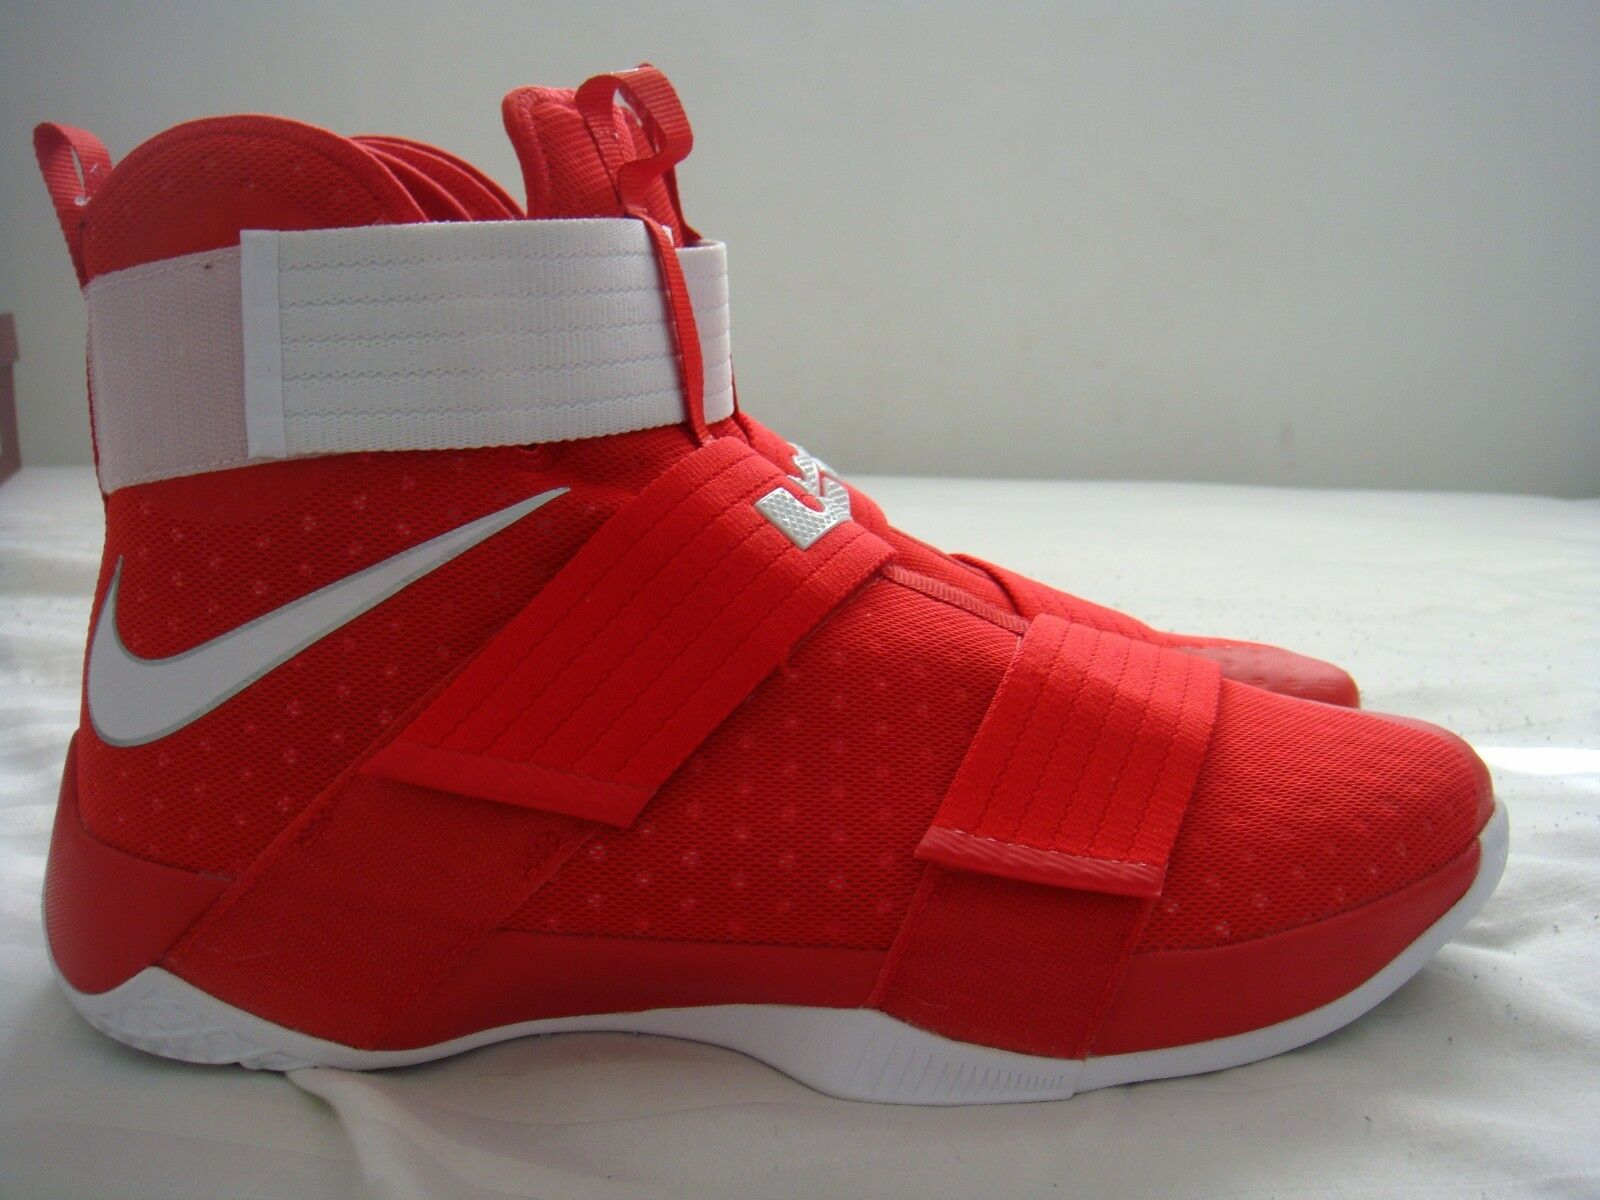 NIKE LEBRON LEBRON NIKE JAMES SOLIDER X 10 ALL RED WHITE SHOES SZ 16 d8fb9b